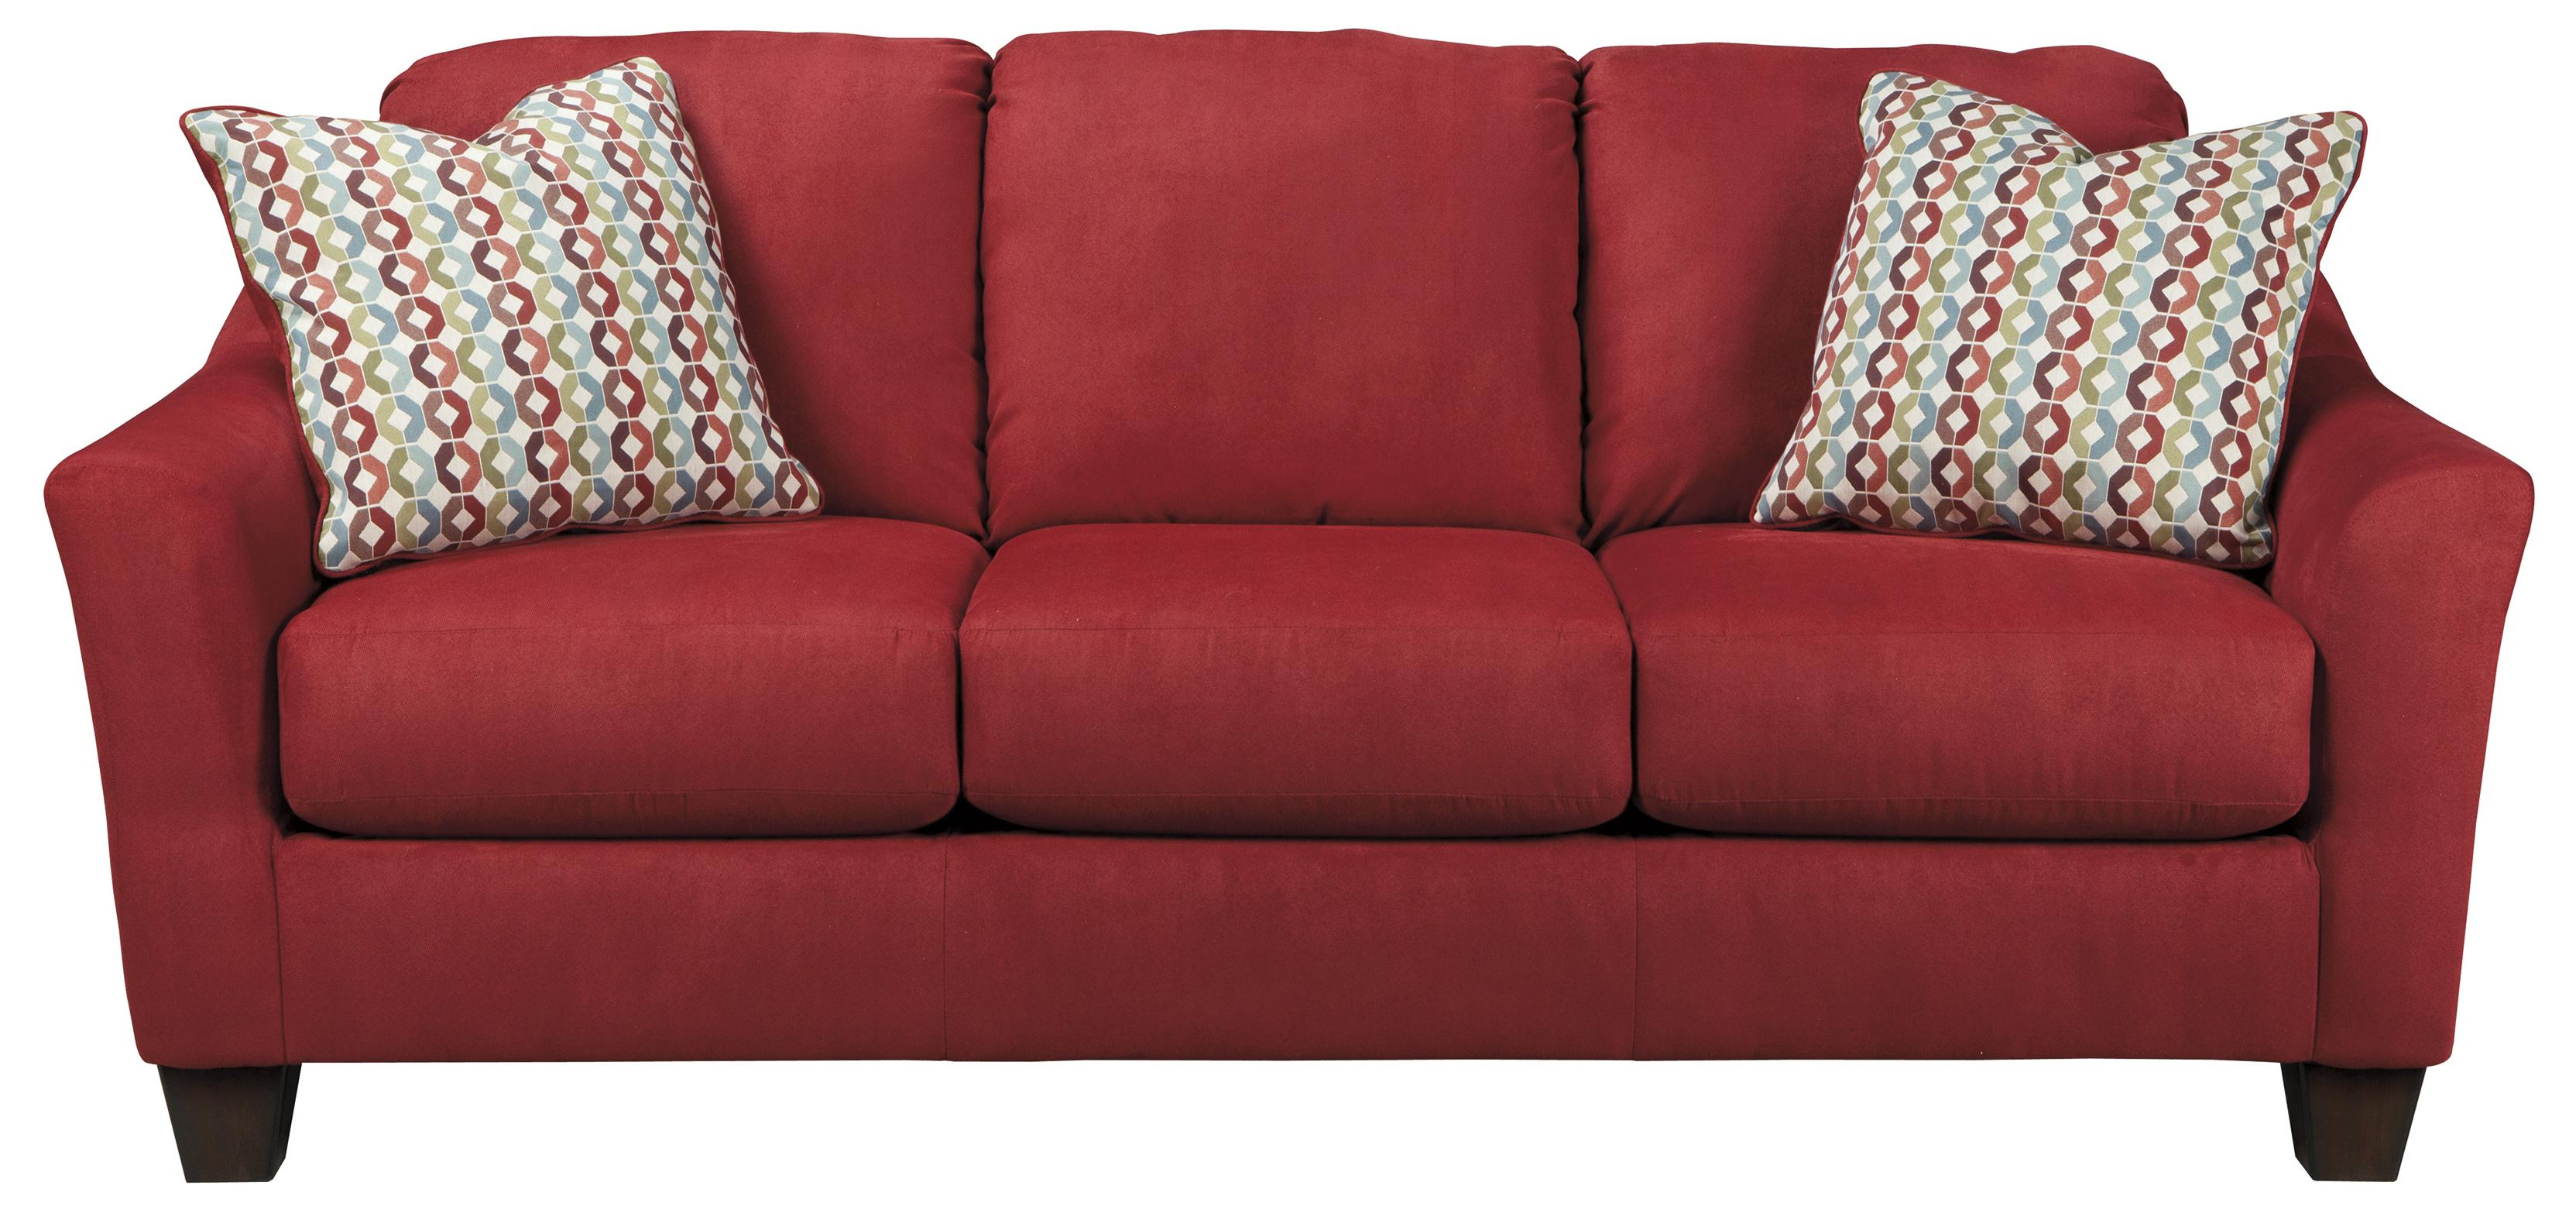 Signature Design by Ashley Hannin - Spice Queen Sofa Sleeper - Item Number: 9580139